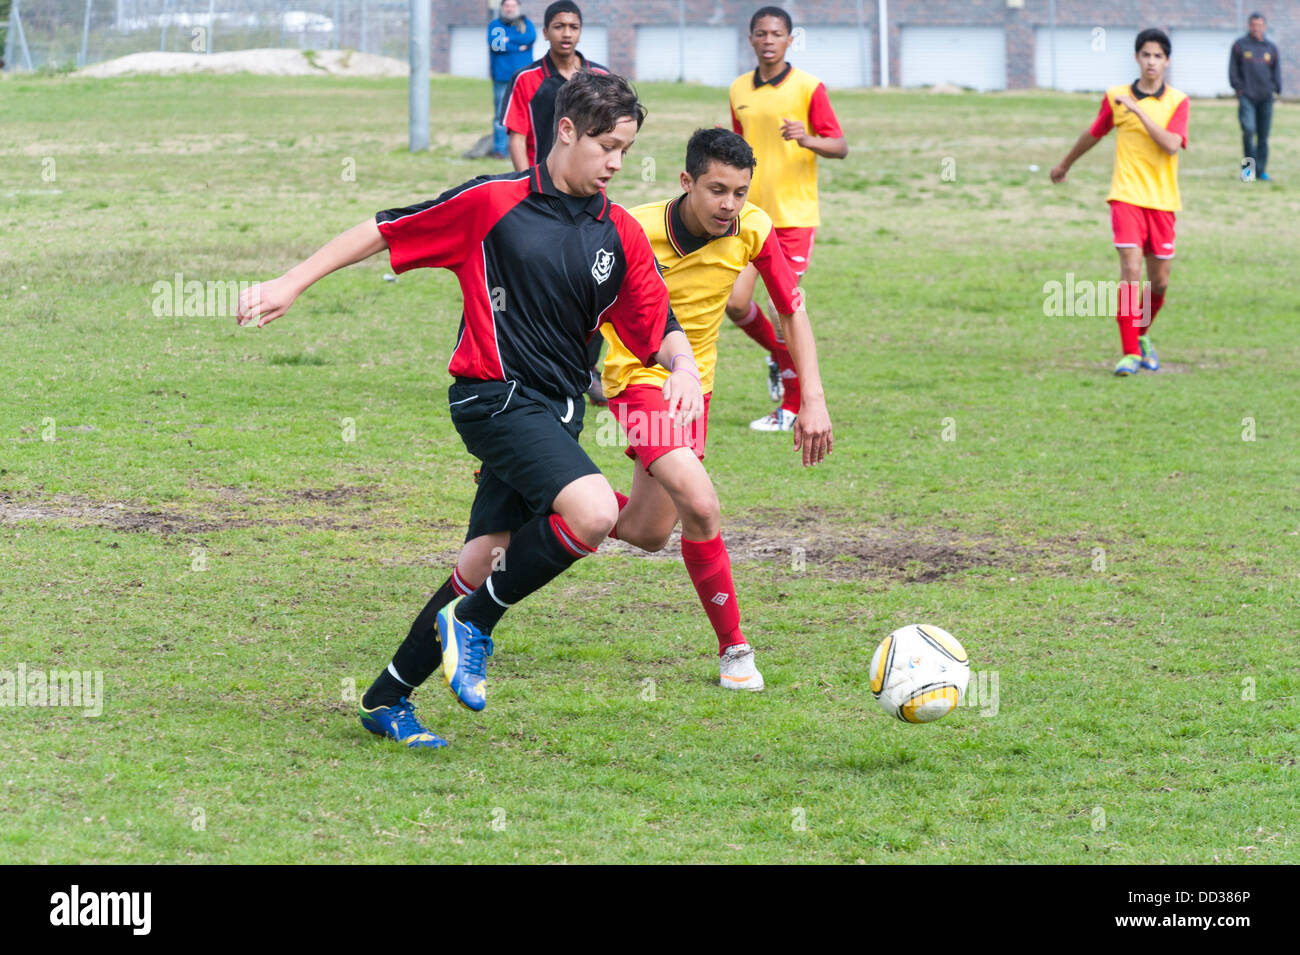 U15B football players in action playing a match Cape Town, South Africa - Stock Image